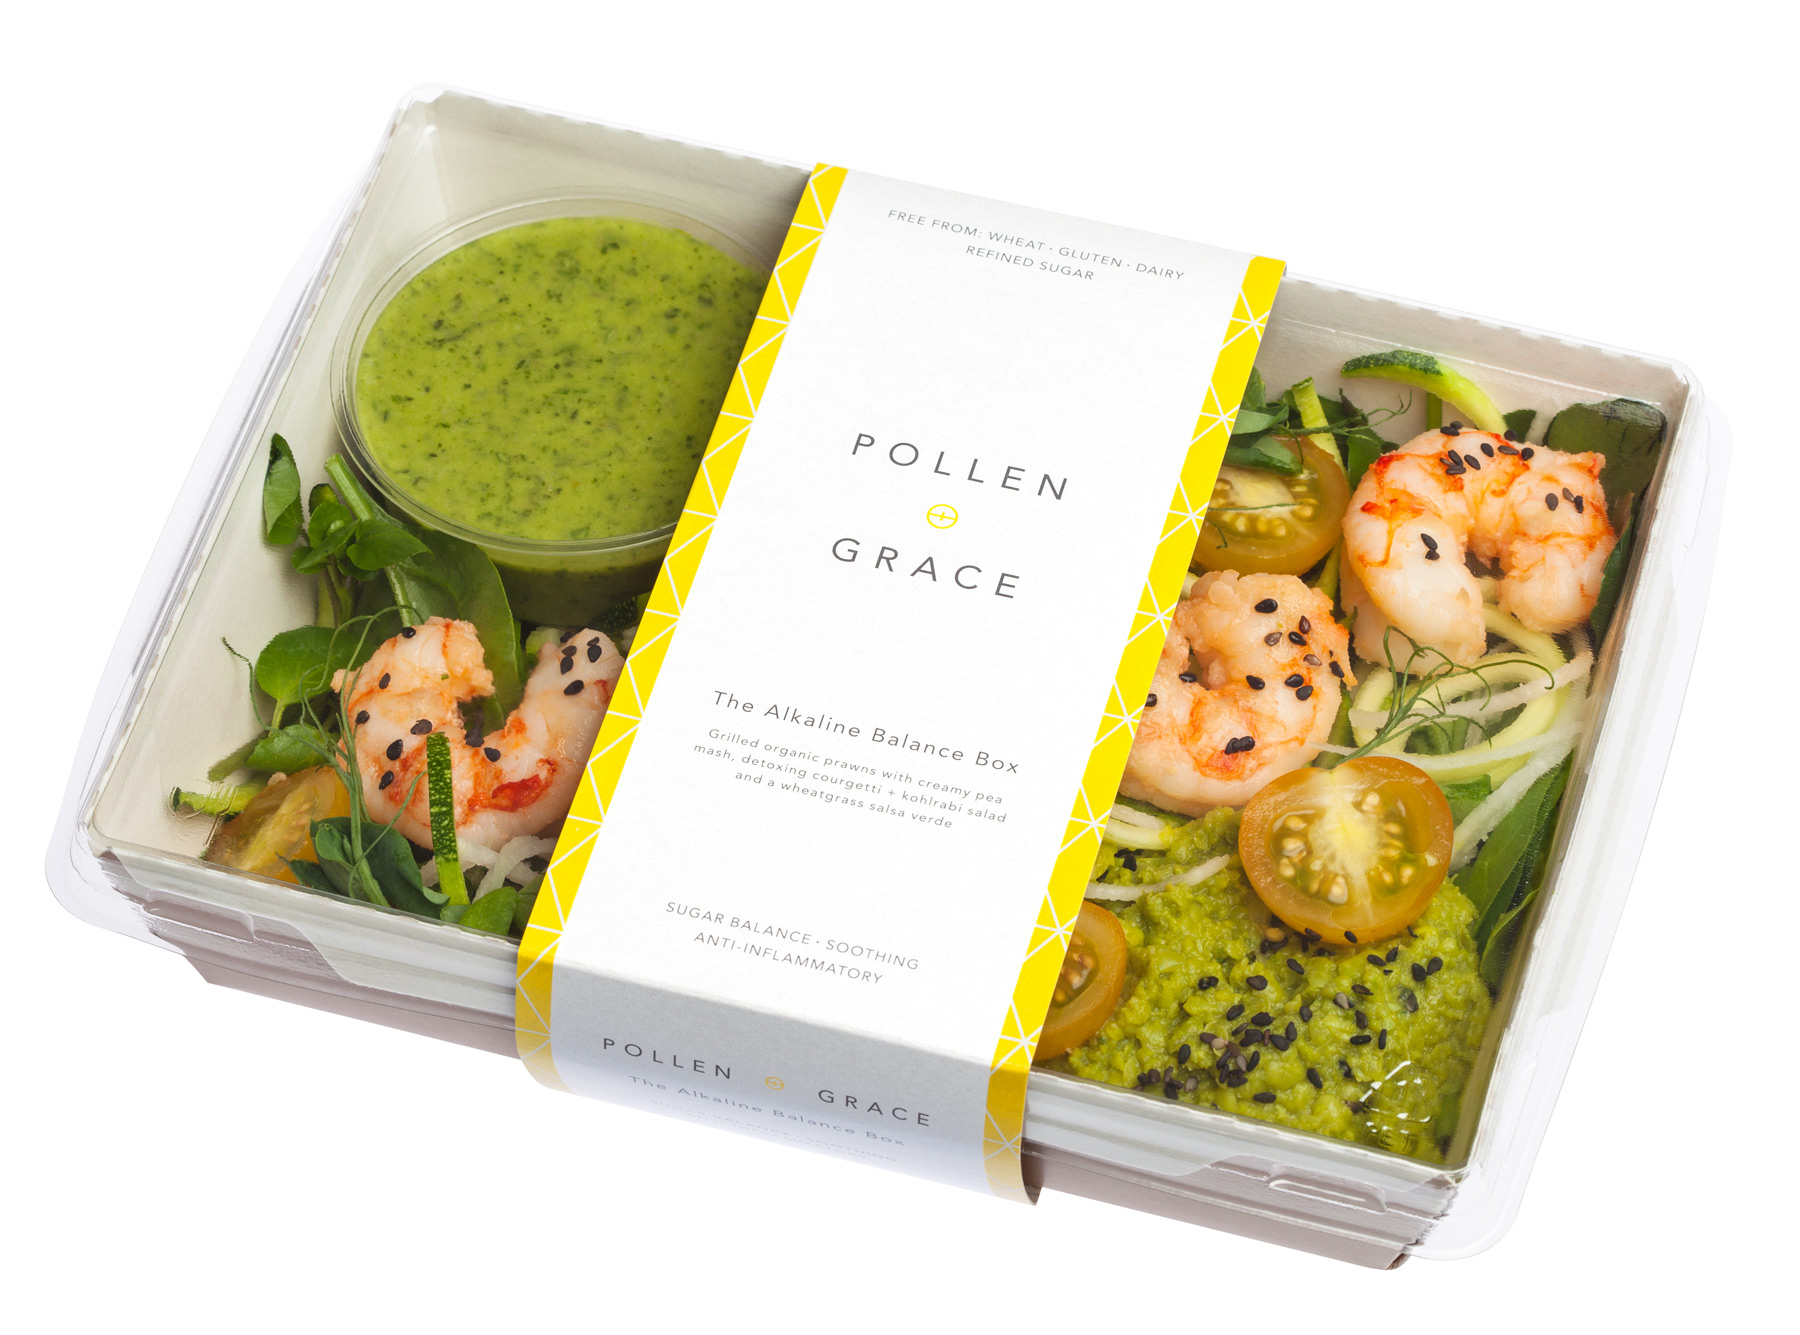 Pollen+Grace: London's Healthy Eating Delivery Service 7